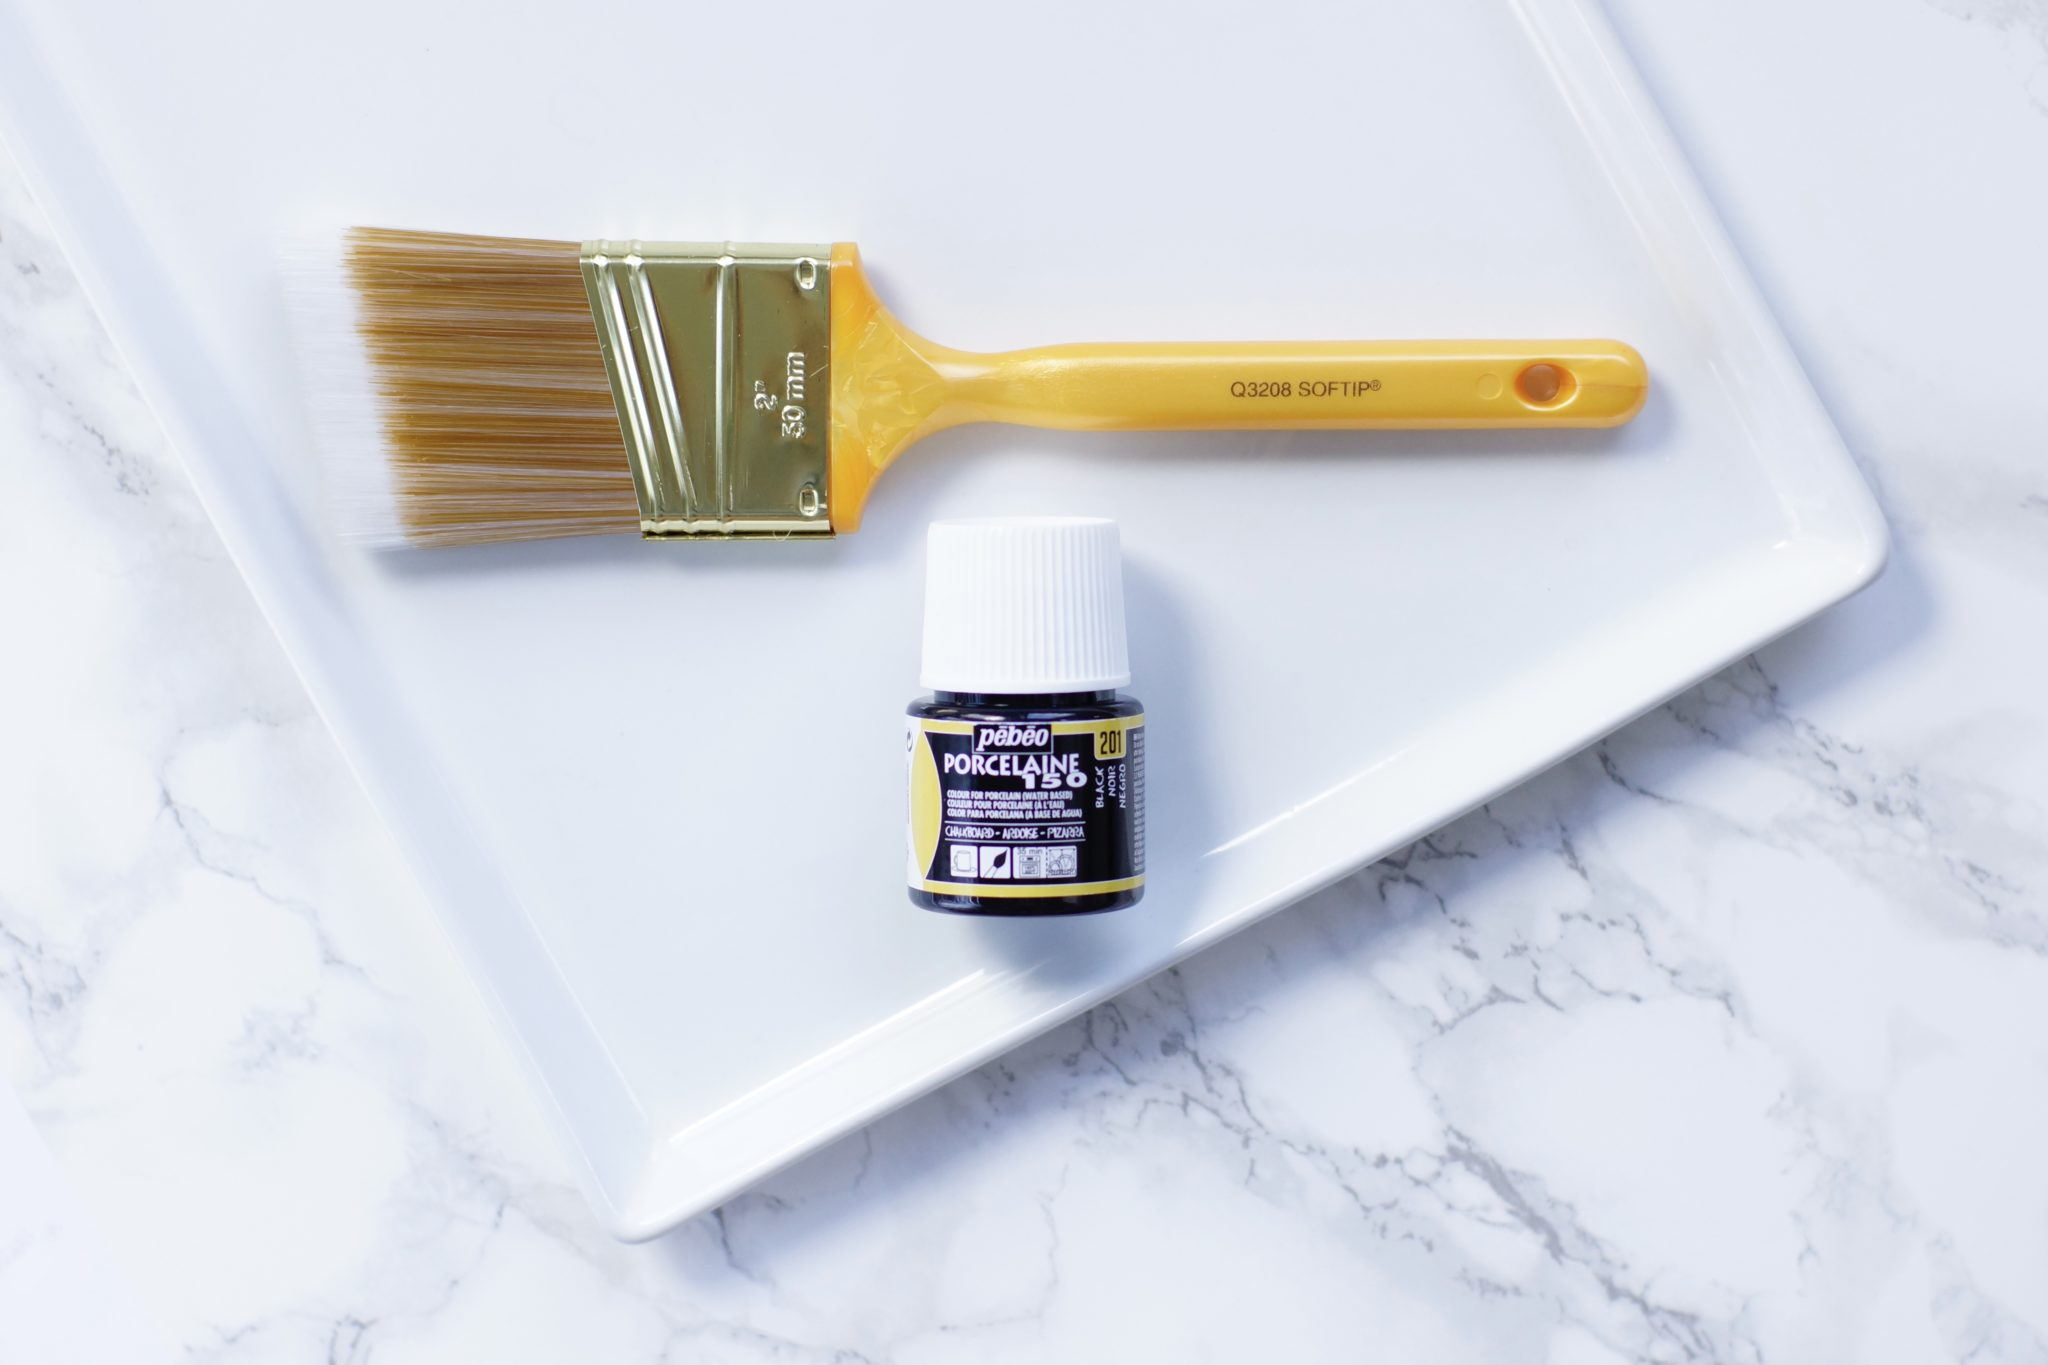 - DIY All-Purpose Chalkboard Serving Tray - Cheese Board - Cheese Tray - Do It Yourself - Pēbēo Porcelaine 150 Chalkboard Paint - Crate and Barrel - Crate & Barrel - CB2 - Cuatro Large Platter - TheKillerLook.com - The Killer Look